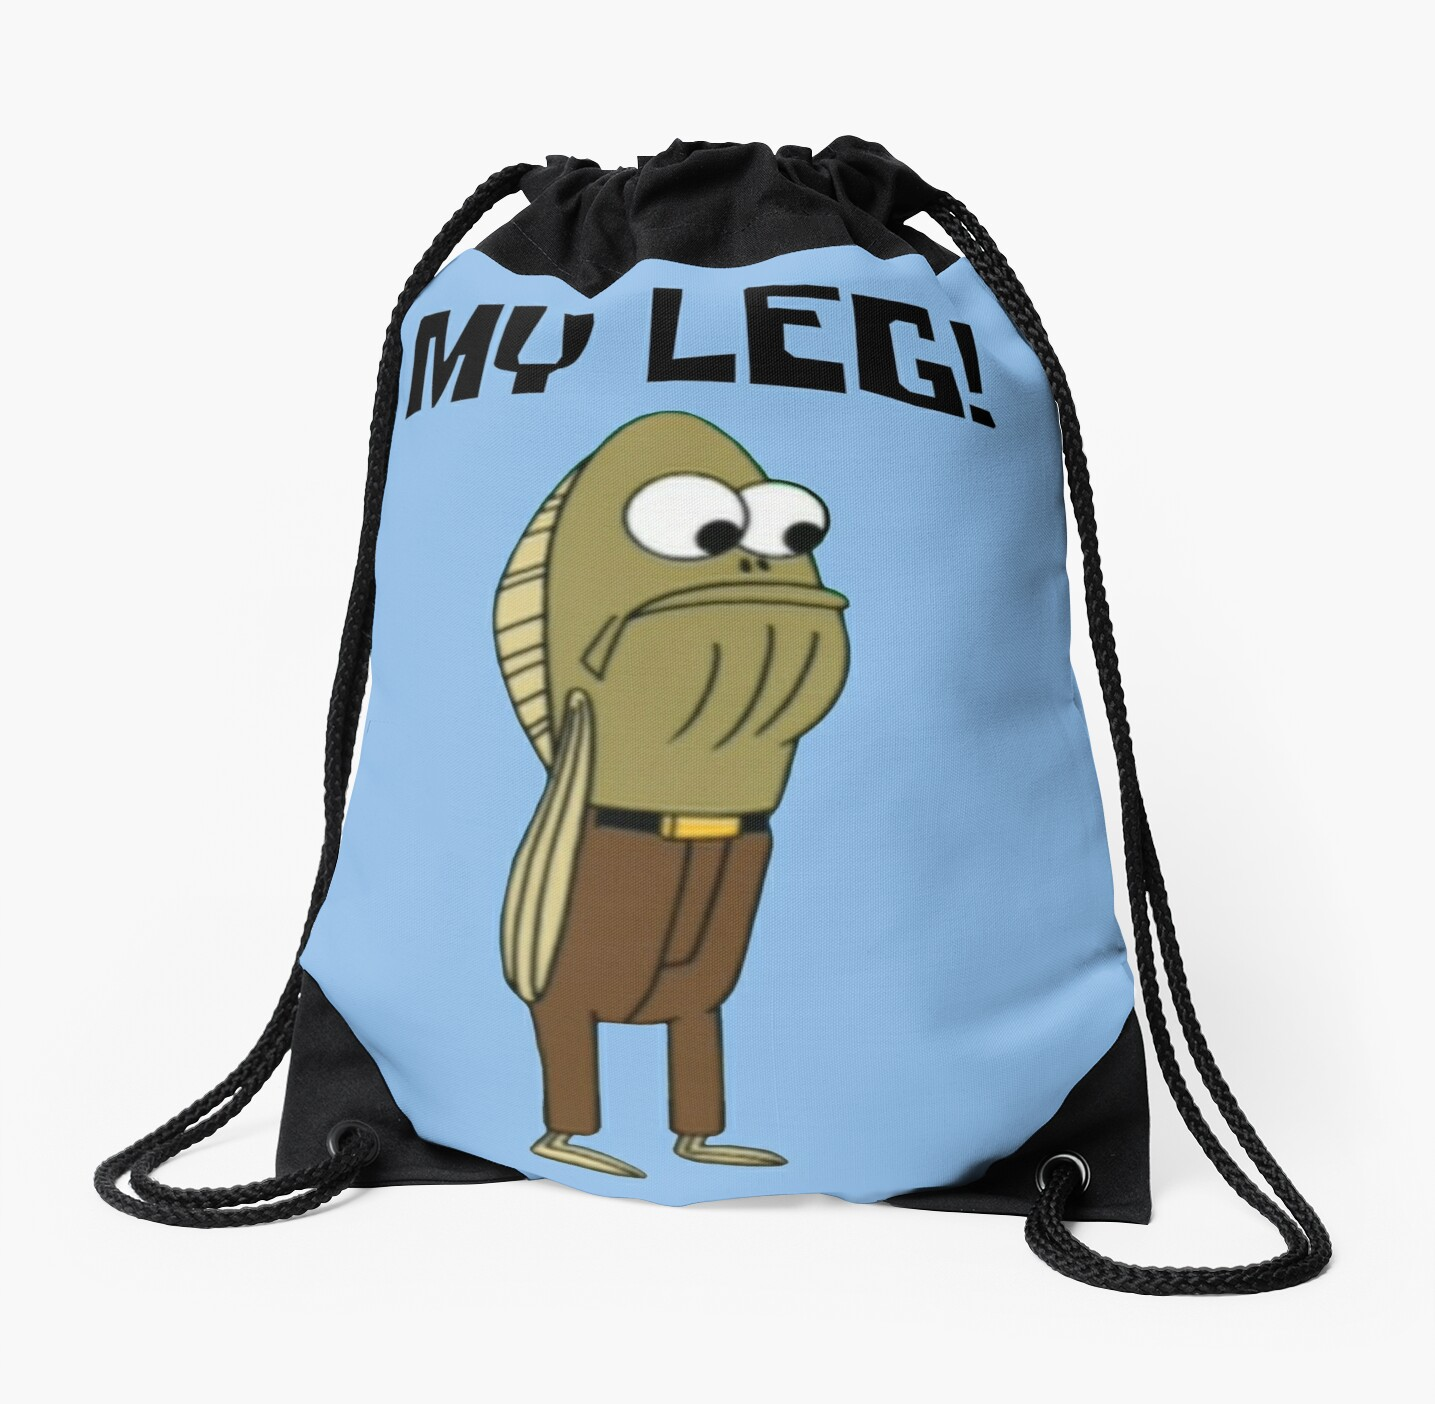 Fred the fish my leg spongebob drawstring bags by for Fred the fish